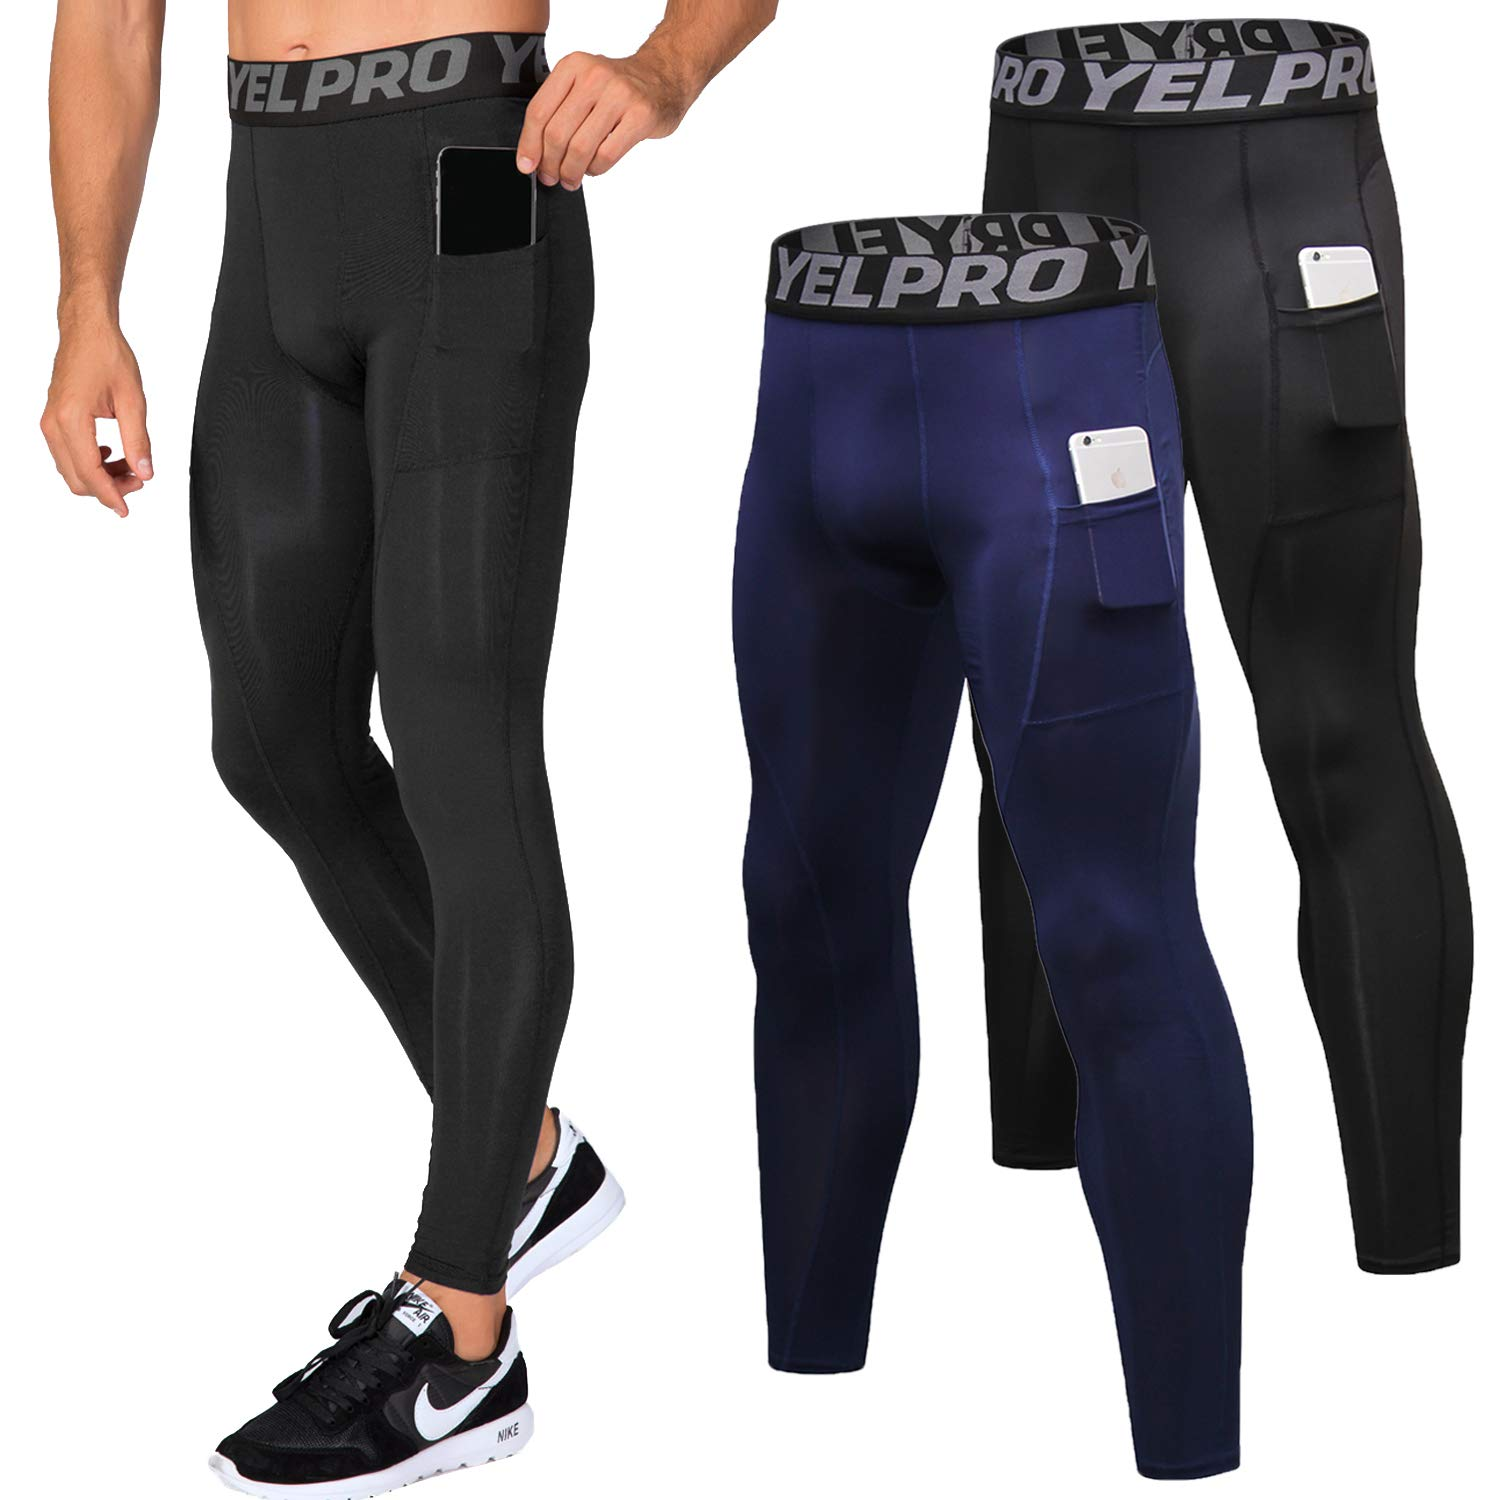 Lavento Men's Compression Pants Baselayer Cool Dry Pocket Running Ankle Leggings Active Tights (2 Pack-3911 Black/Navy Blue,X-Large) by Lavento